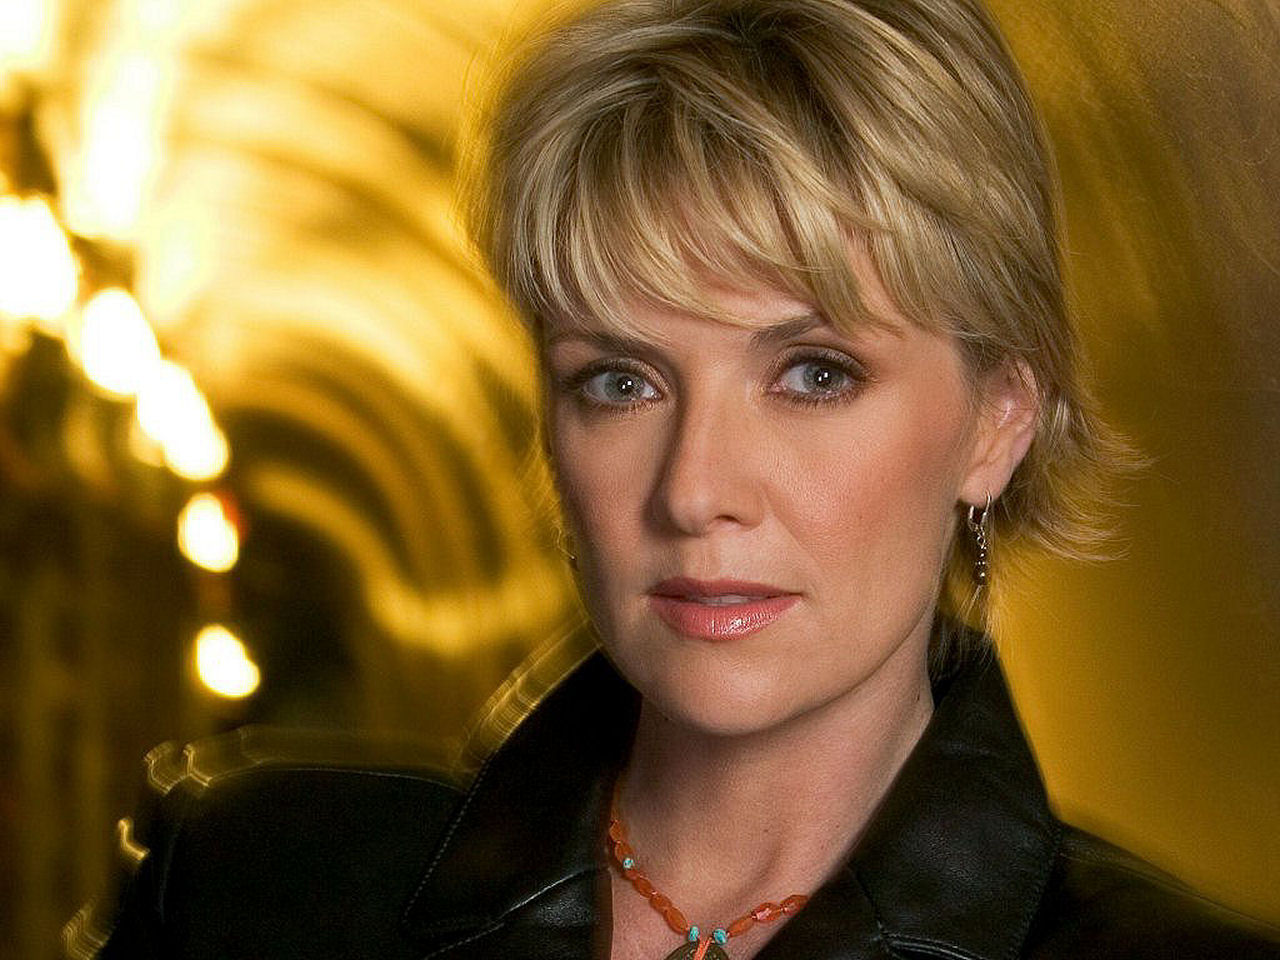 Amanda tapping totally naked porn something is